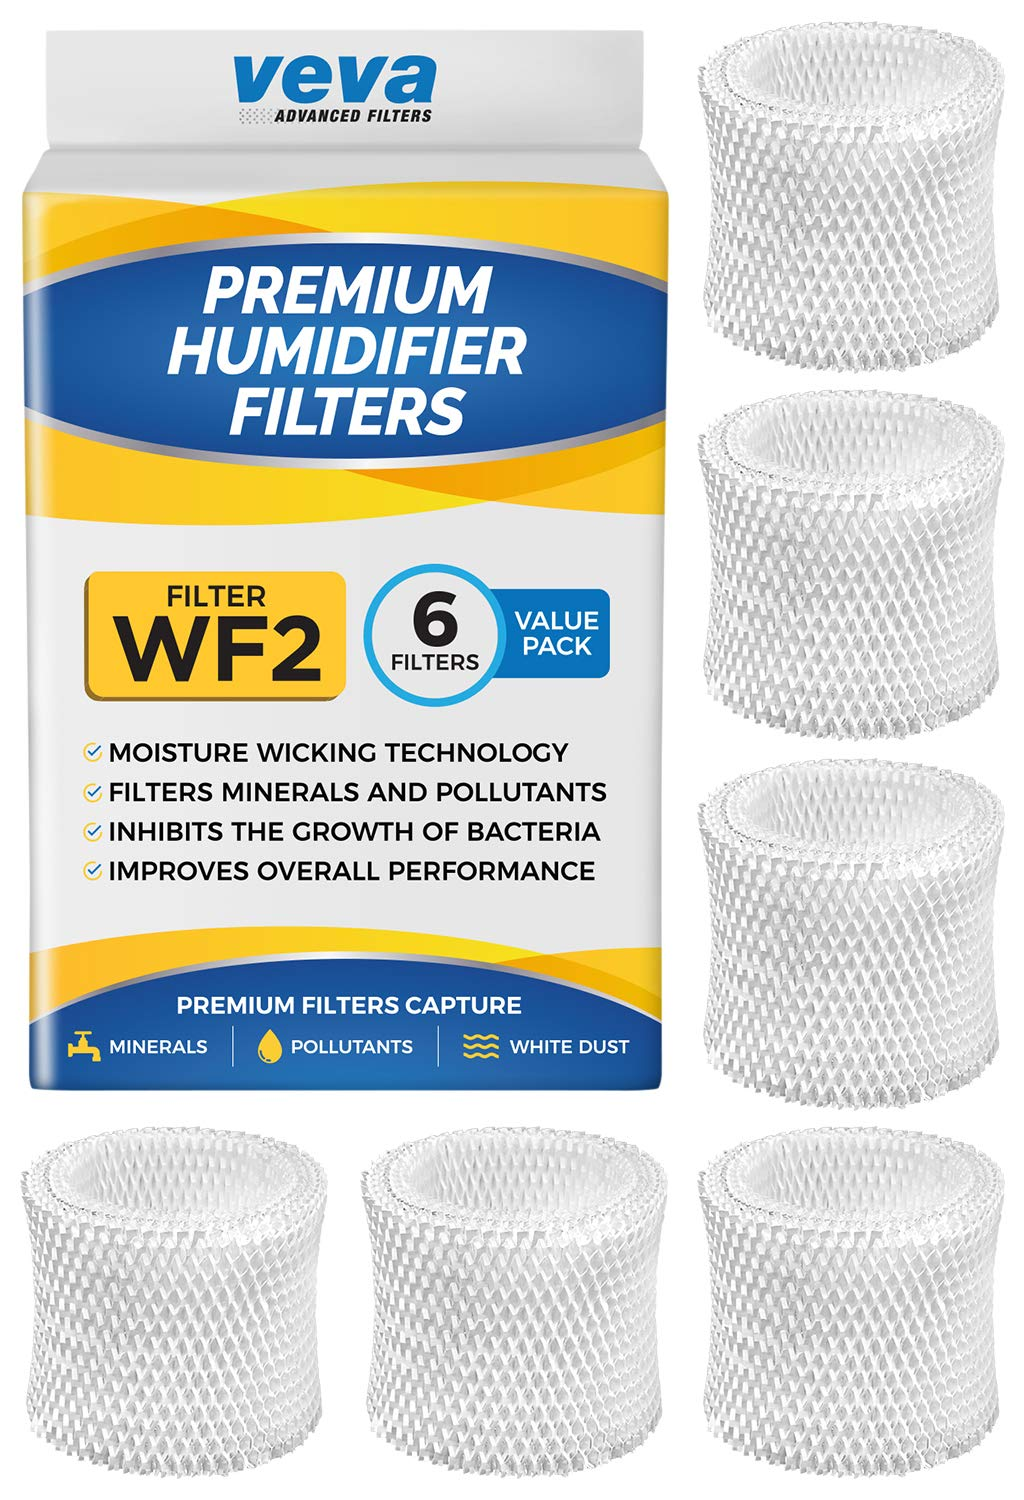 VEVA 6 Pack Premium Humidifier Filters Replacement for Protec, Vicks, Kaz Filter WF2 and V3500, V3100 & 3020 Cool Mist Humidifiers by VEVA